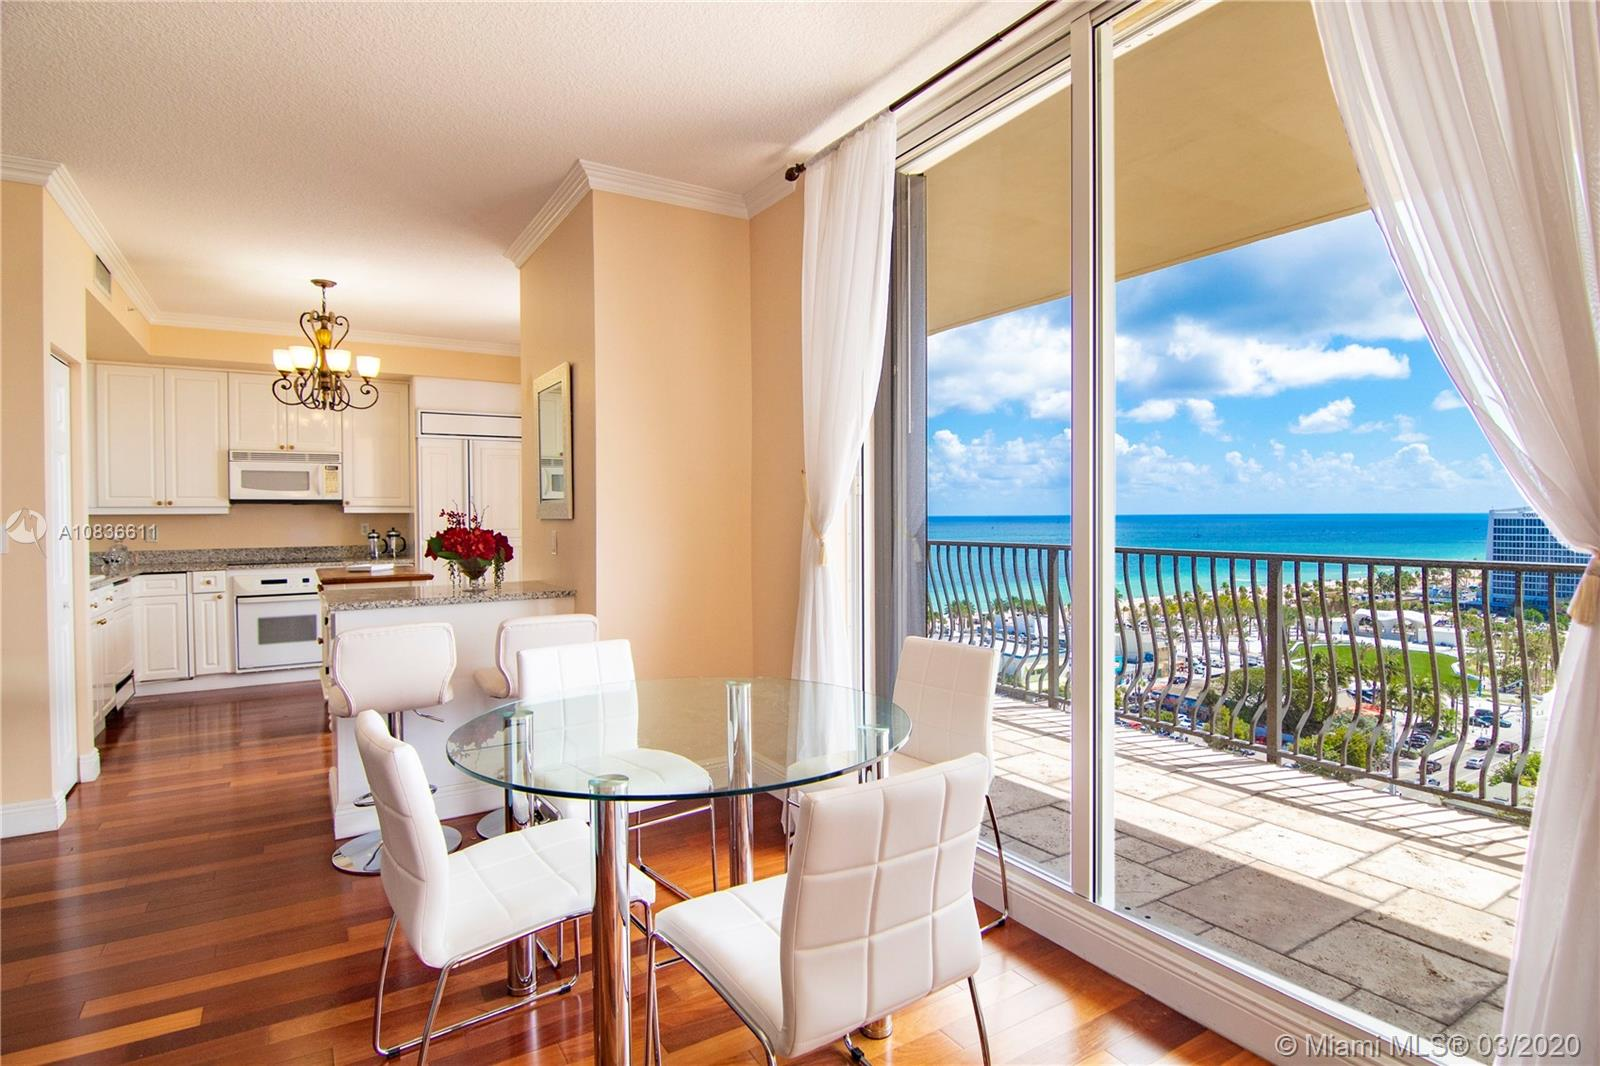 Located steps away from the beach and Las Olas Boulevard,  this stunning 2 + den, 2.5 bath condo inside the iconic Jackson Tower in the heart of the Fort Lauderdale entertainment district is the ultimate combination of what South Florida has to offer. Private elevator brings you to the open concept living area with striking views of the Atlantic Ocean, Intracoastal waterways, and downtown Fort Lauderdale. The unit features pristine Brazillian cherry wood floors, oversized balcony accessible from all rooms, and a spacious master bedroom. It's a must-see to truly appreciate. Resort-style building is pet friendly and provides plenty of amenities for all to enjoy. Priced competitively for a quick sale. Rentable right away for a minimum of 6 months twice a year.